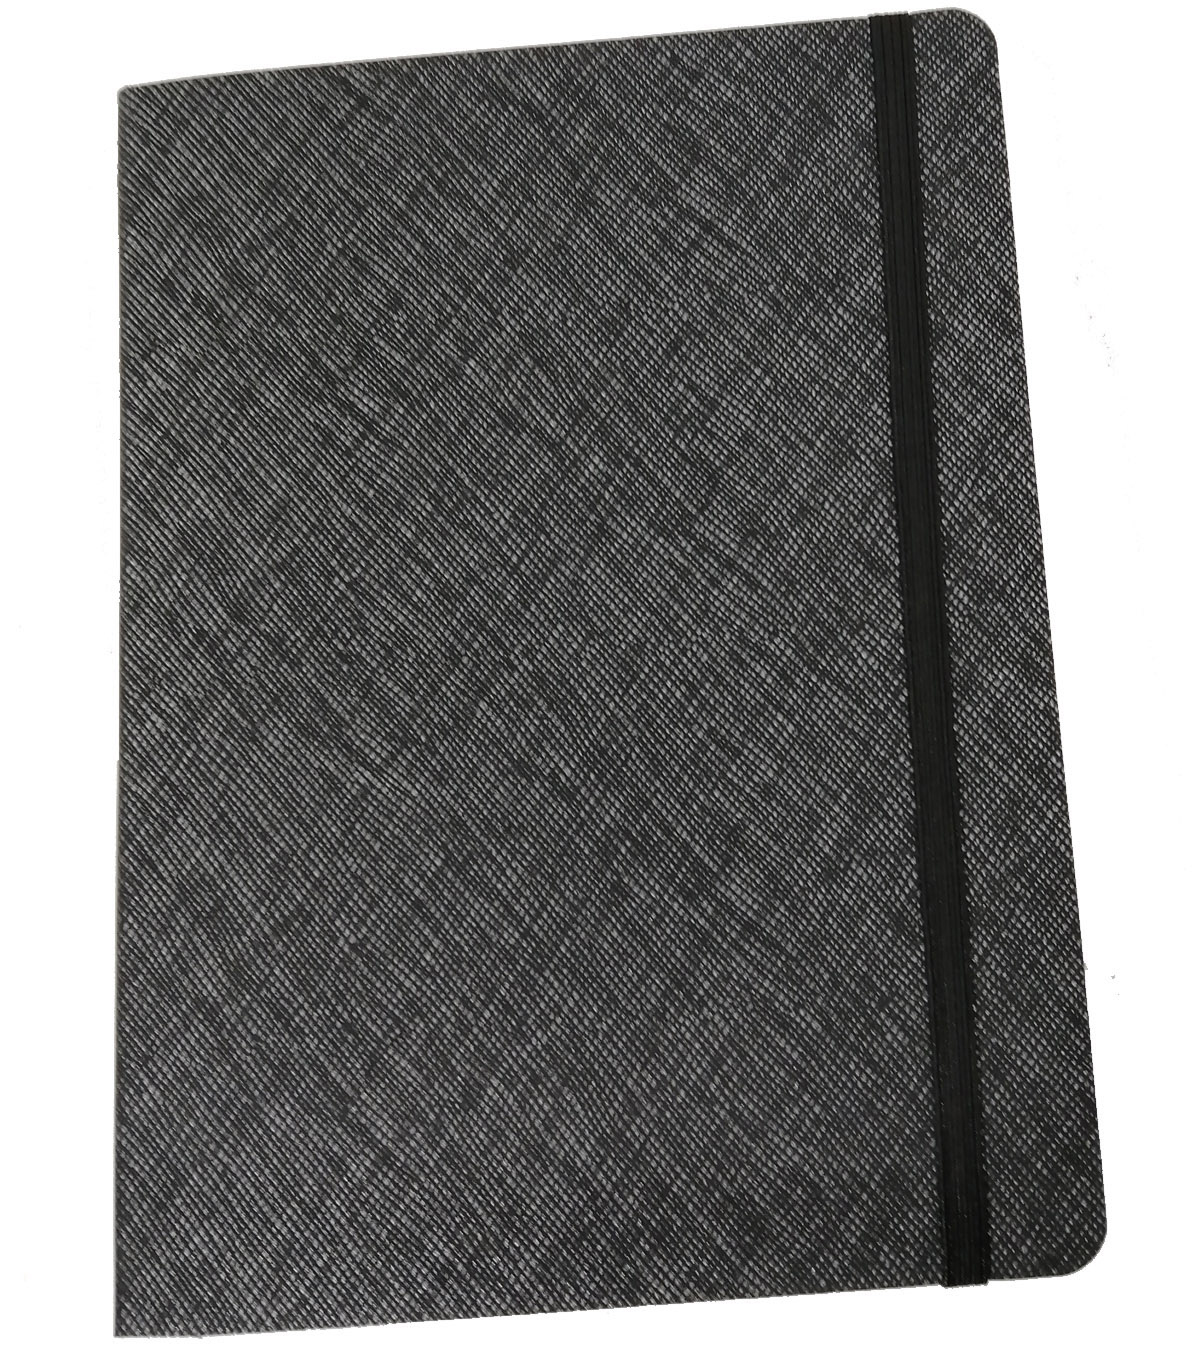 Park Lane Textured Softcover Journal-Black